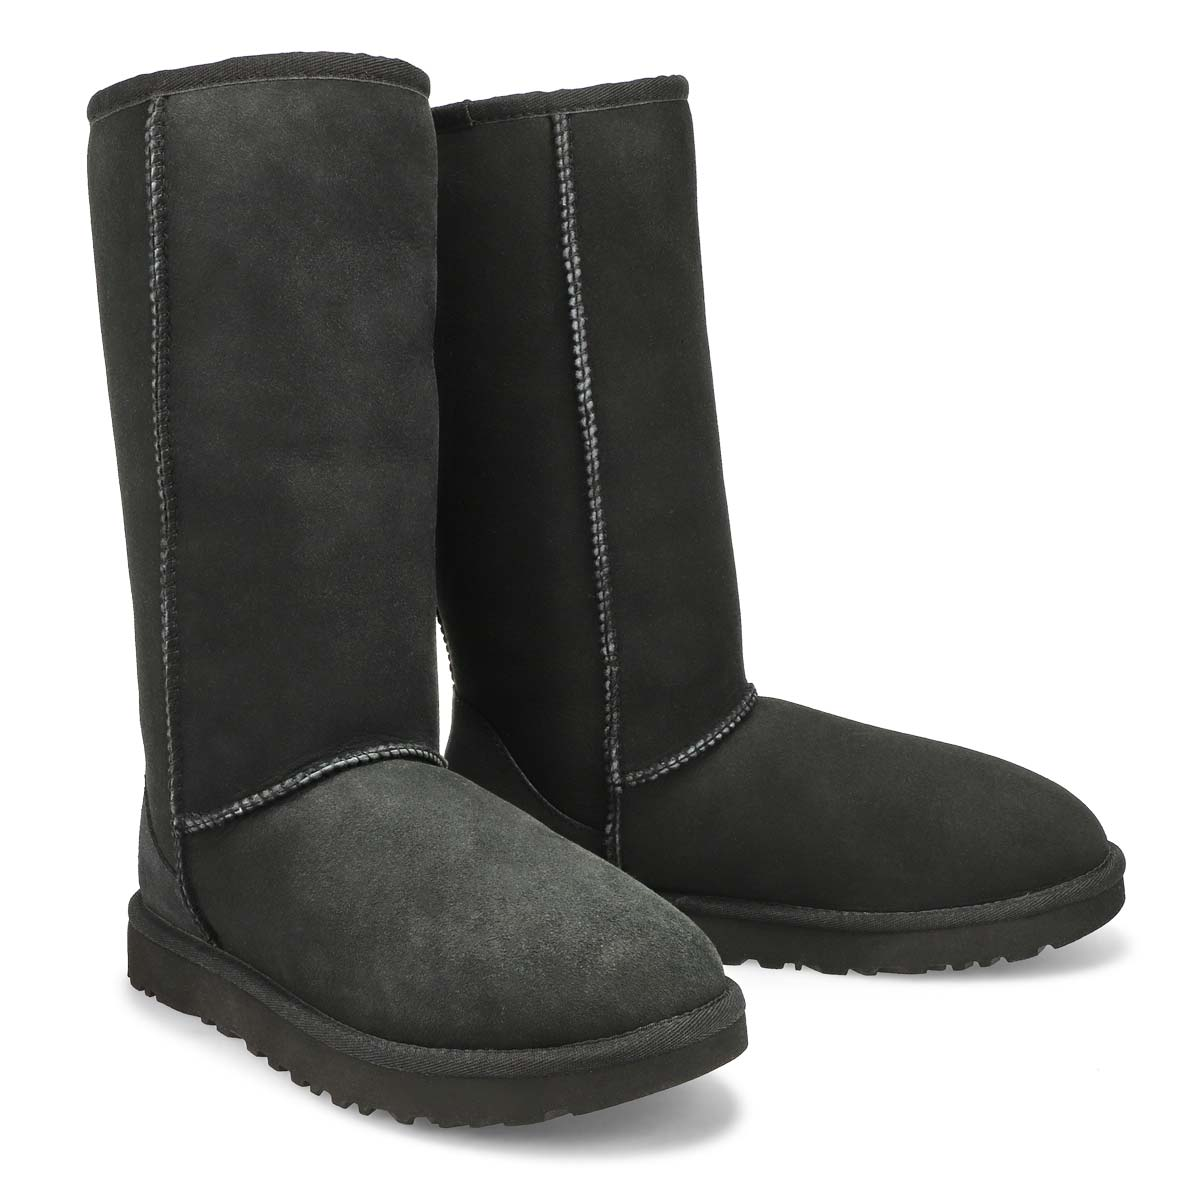 Lds Classic Tall II black sheepskin boot